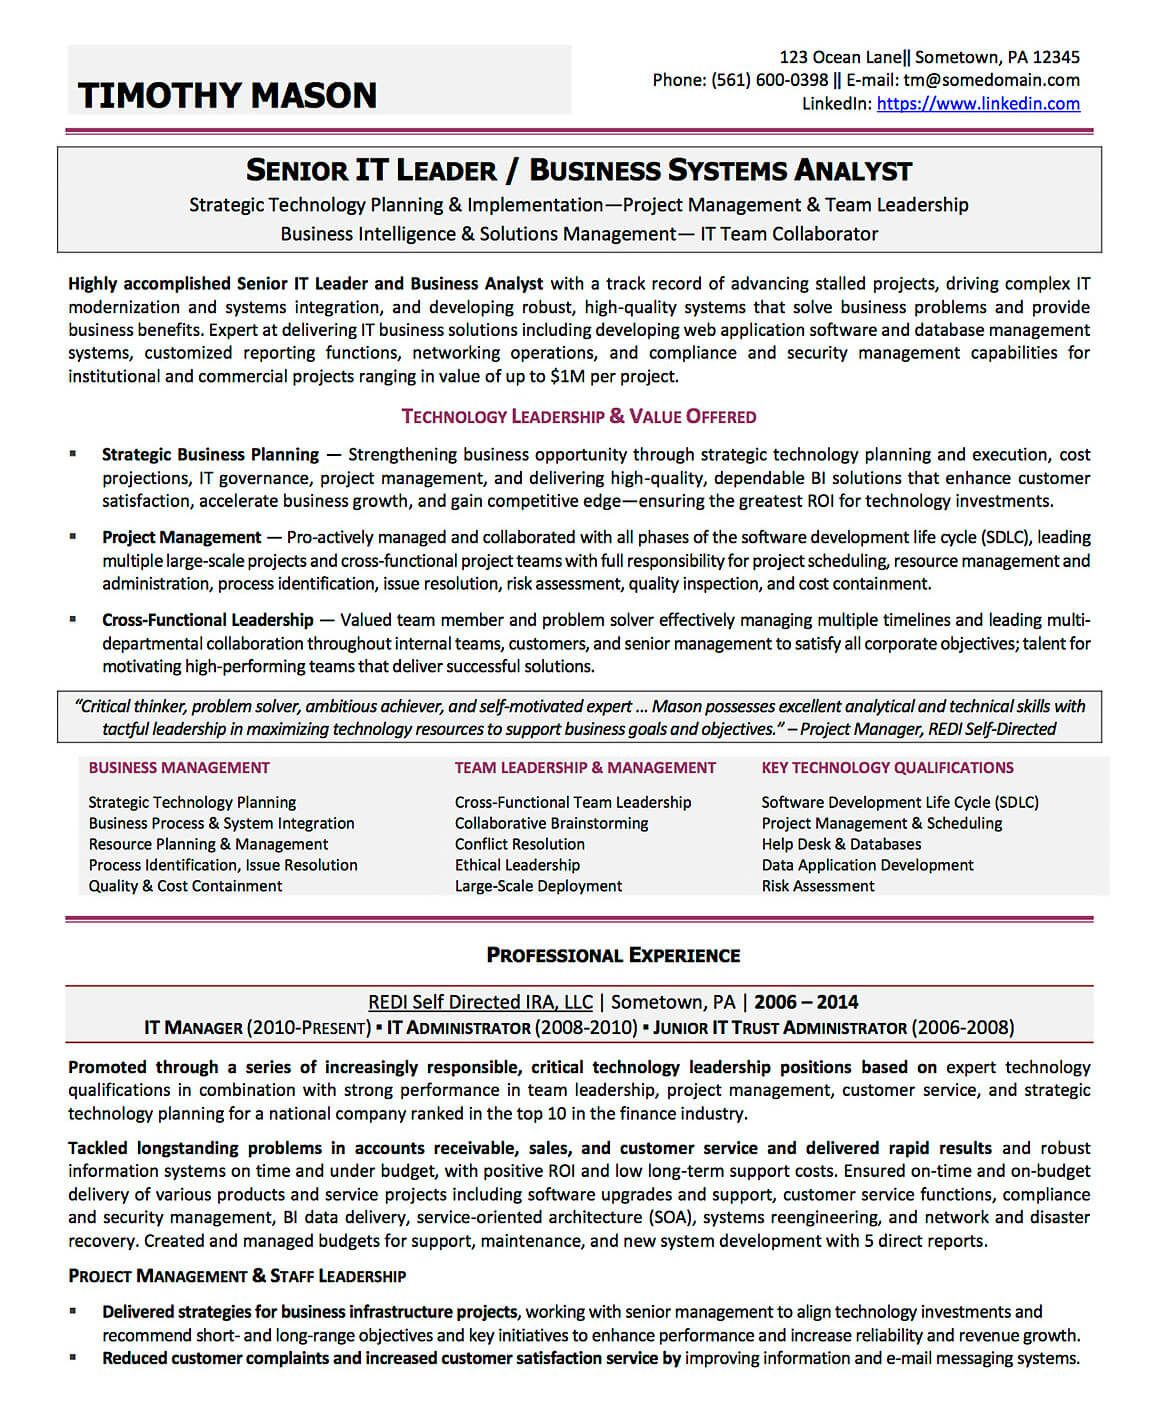 Account Analyst Resume Resume Examples Cv Sample Resume Templates Rso Resumes